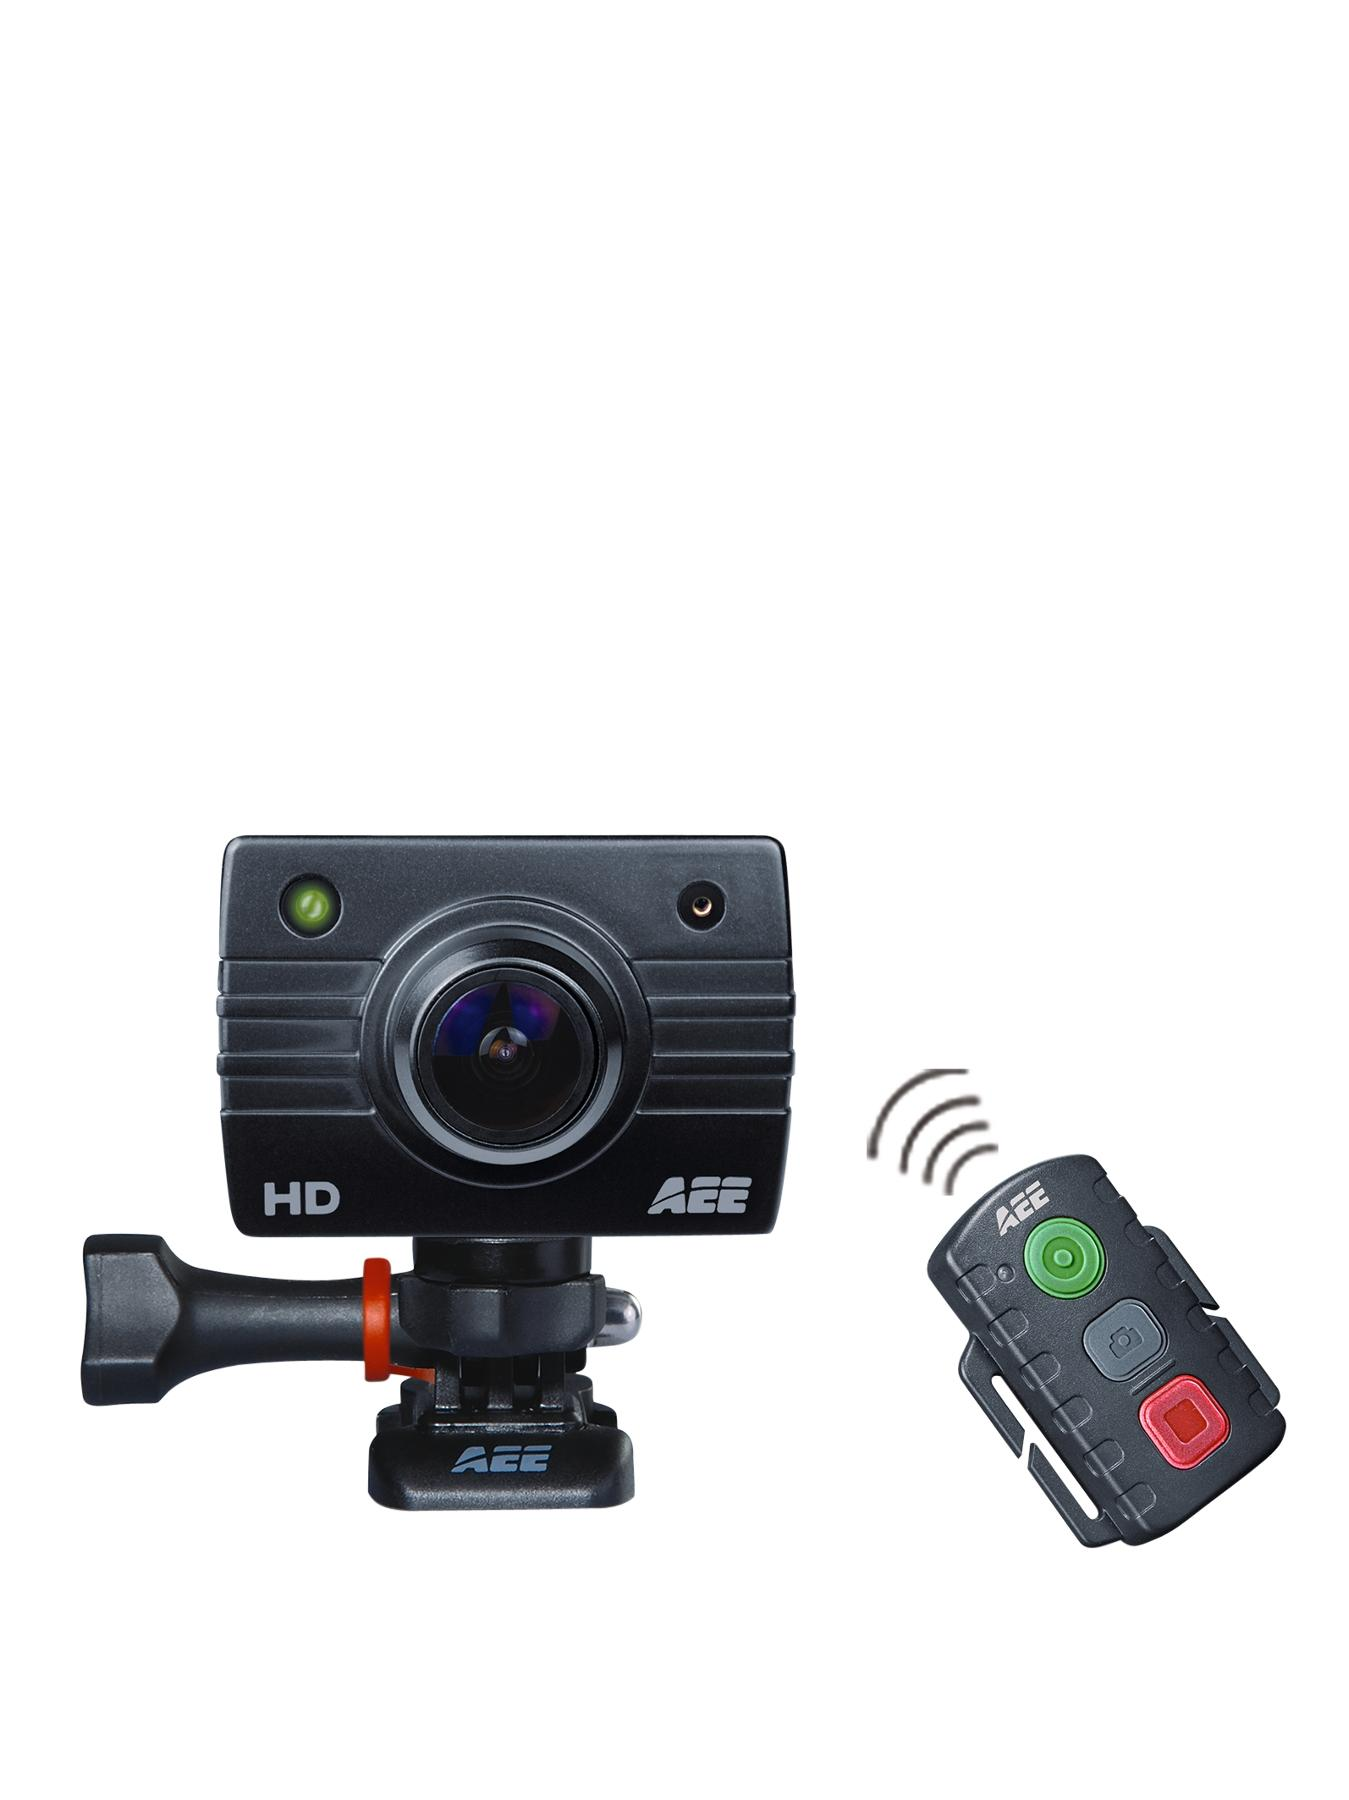 AEE MagiCam SD22 8 Megapixel Waterproof HD Action Video Camera